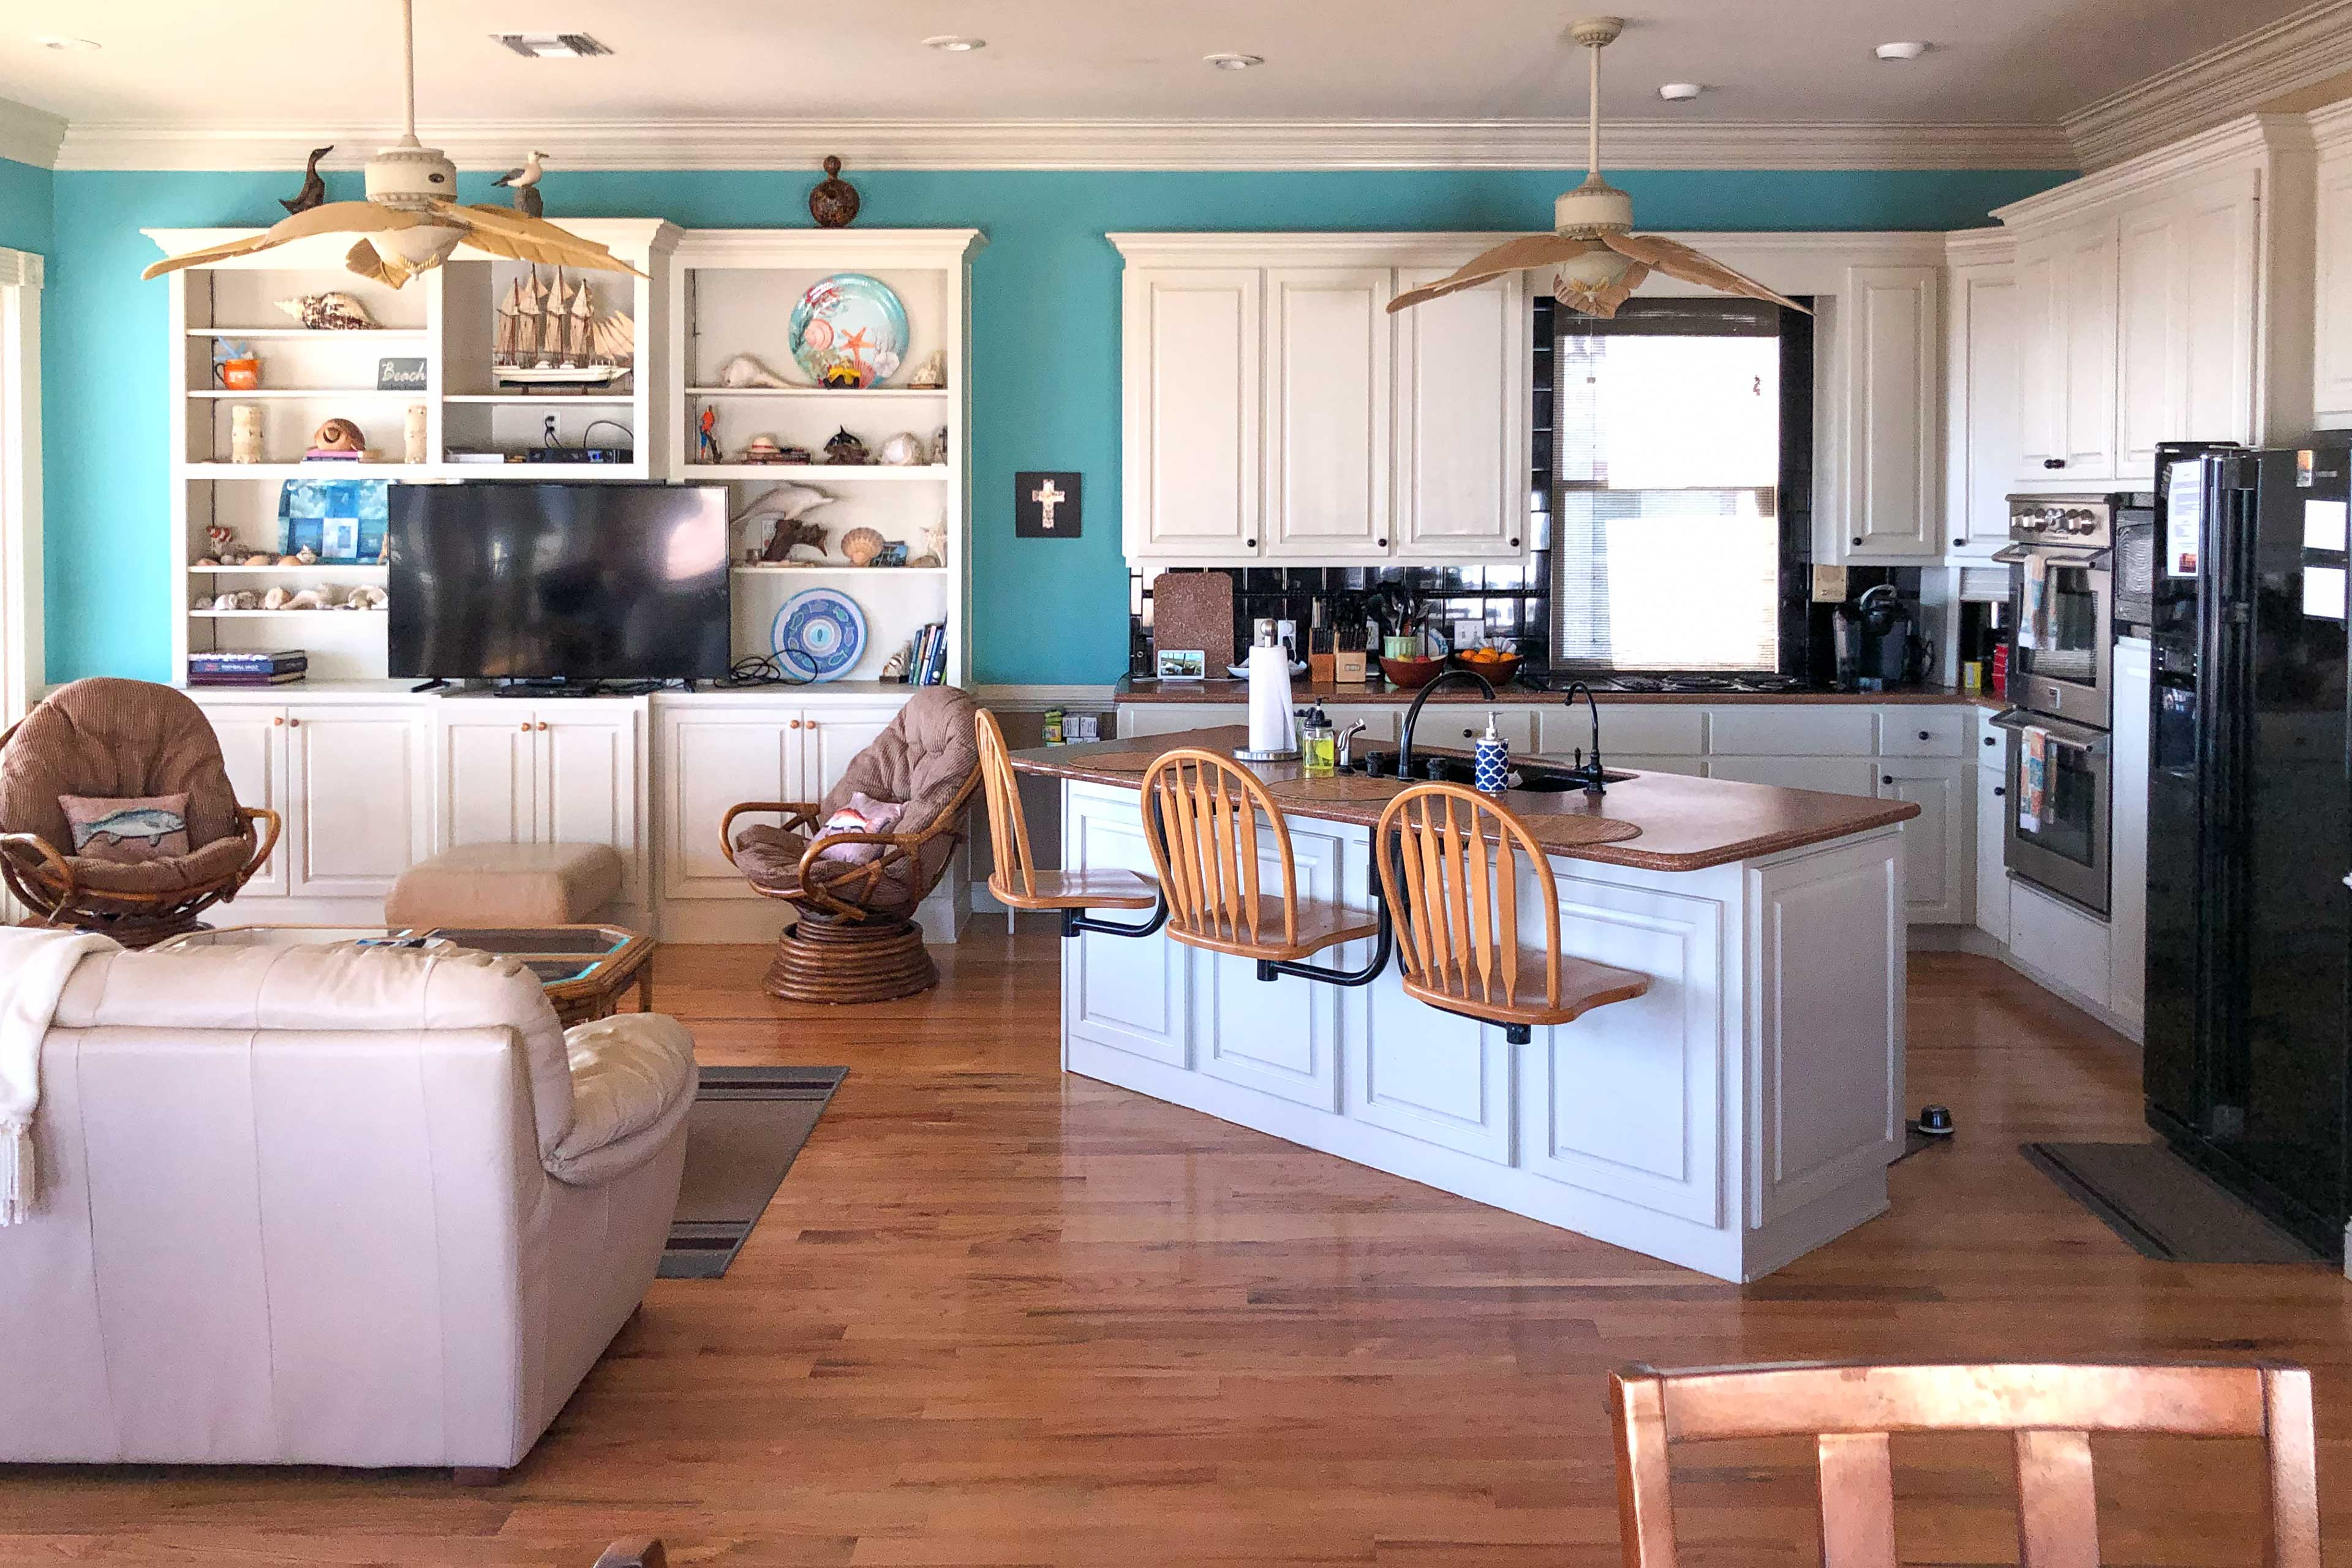 The first fully equipped kitchen offers an island w/old-fashioned swivel chairs.